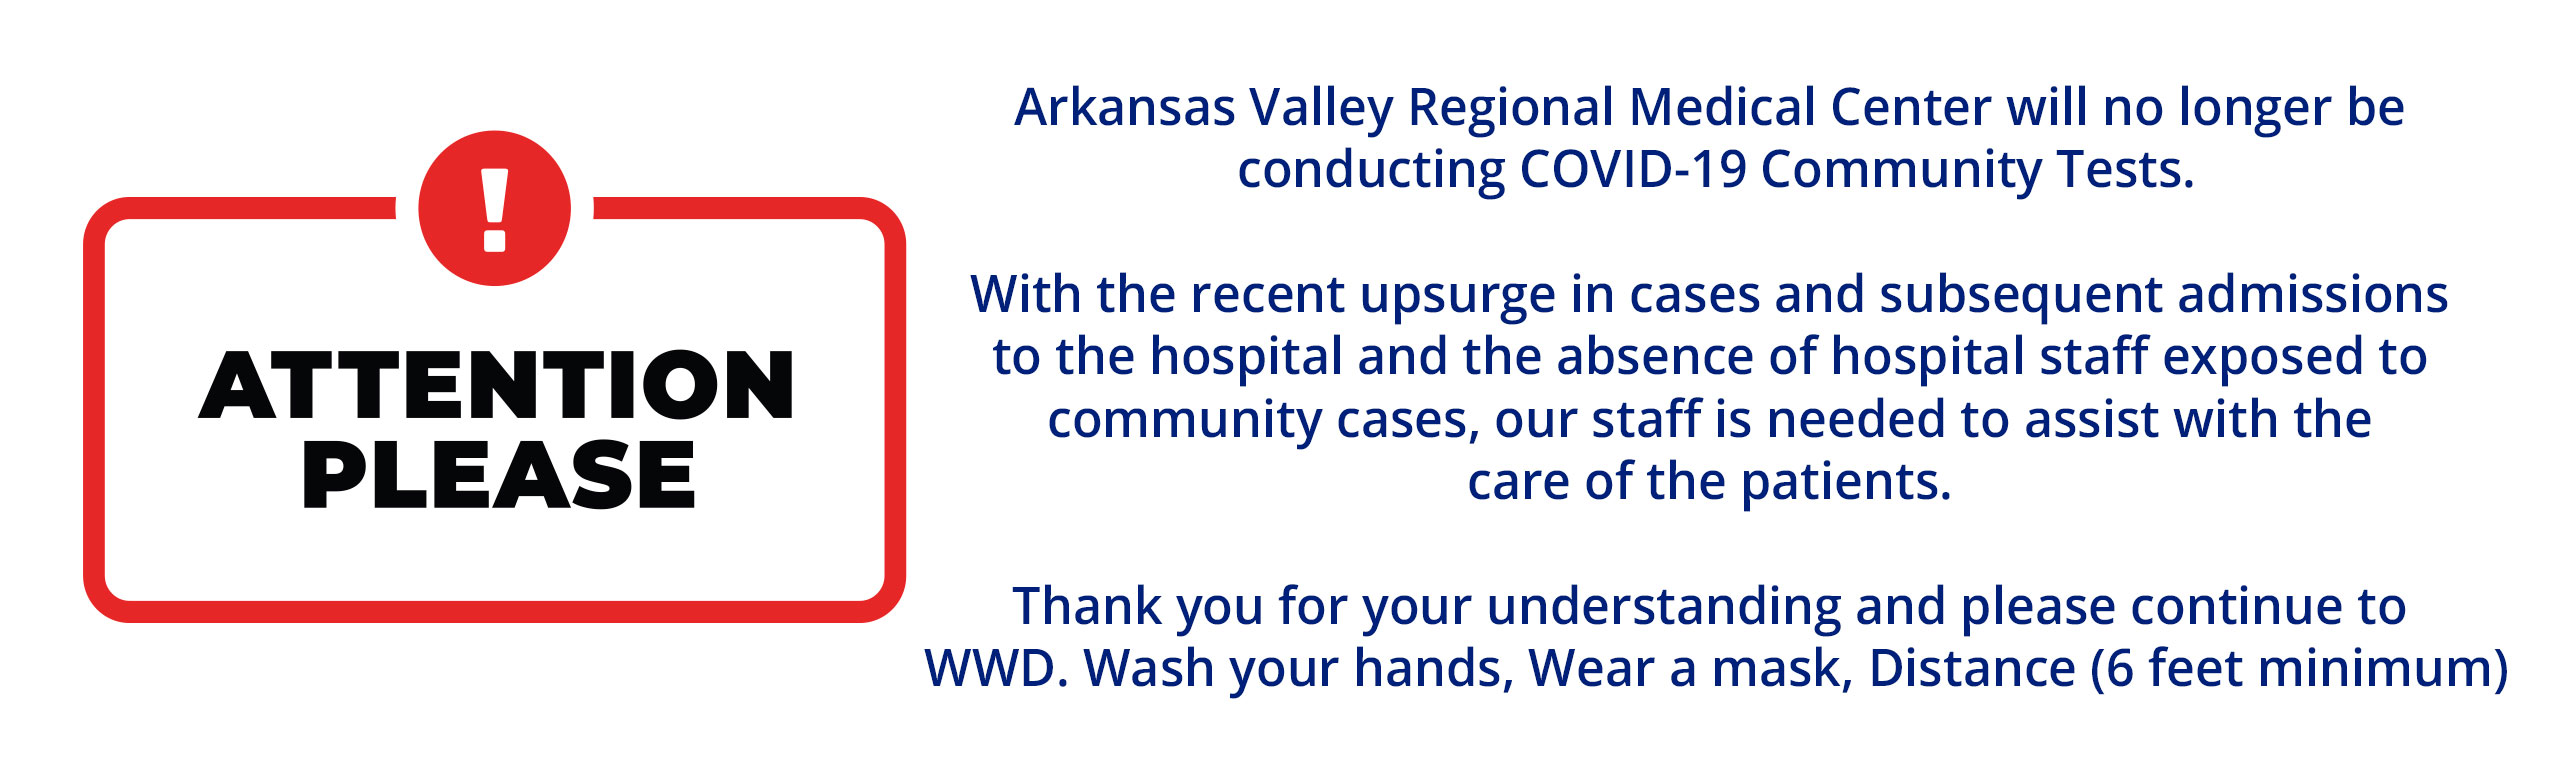 Notice Me  Arkansas Valley Regional Medical Center will no longer be conducting COVID-19 Community Tests. With the recent upsurge in cases and subsequent admissions to the hospital and the absence of hospital staff exposed to community cases, our staff is needed to assist with the care of the patients. Thank you for your understanding and please continue to WWD. Wash your hands, Wear a mask, Distance (6 feet minimum)